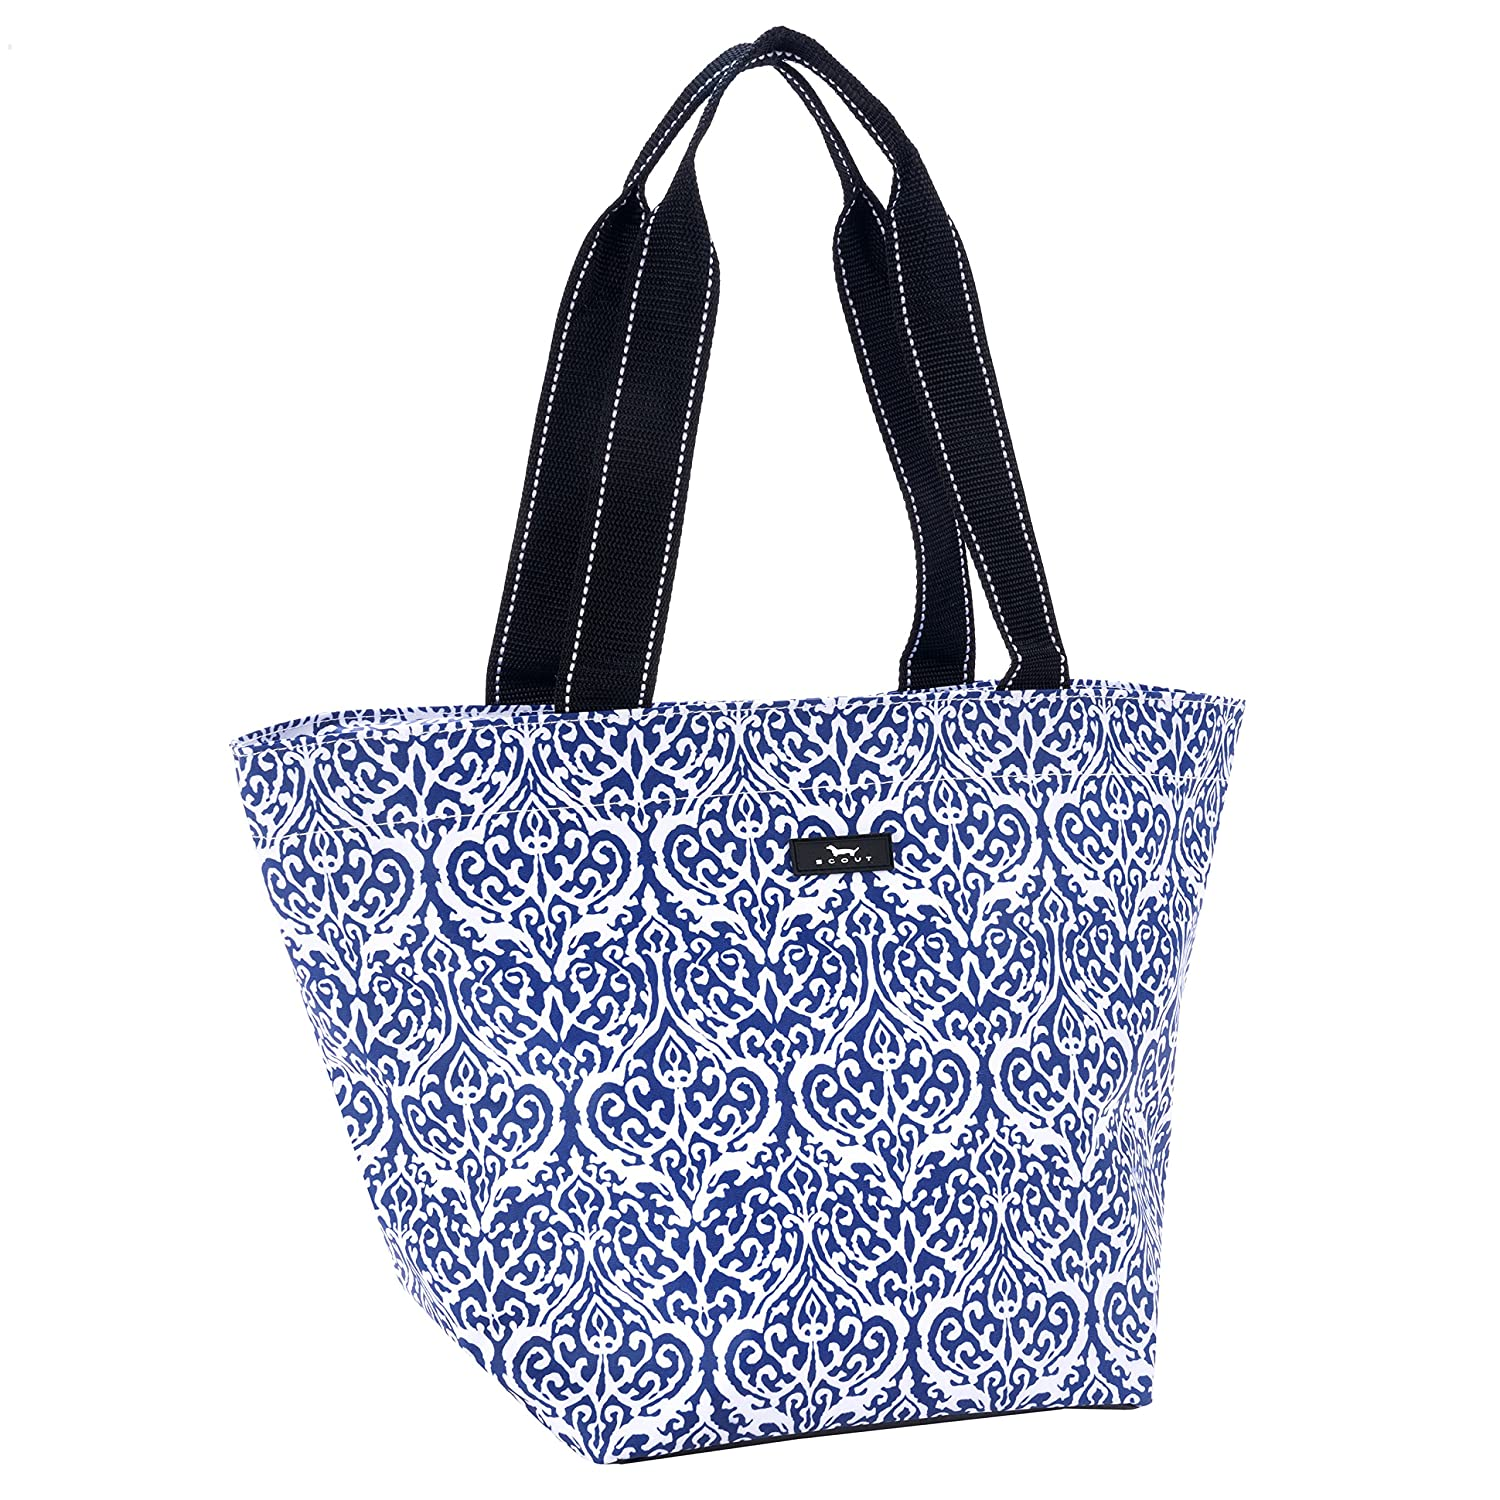 Royal Highness SCOUT Daytripper Everyday Tote Bag, Shoulder Bag, Water Resistant, Wipes Clean, Zips Closed, Tally Girl